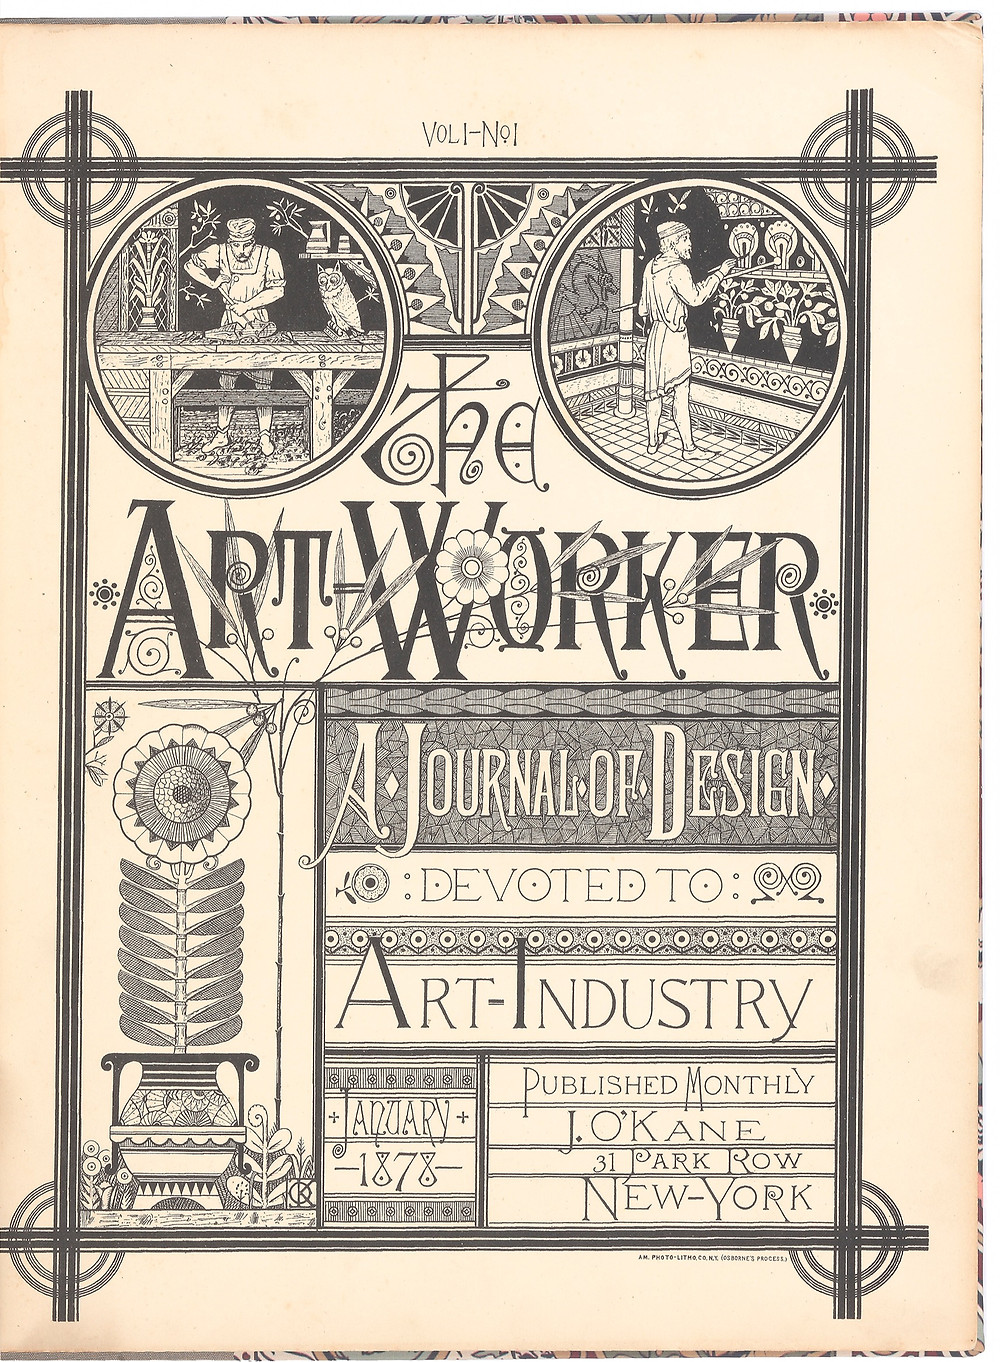 The art-worker: A journal of design devoted to art-industry. New York: Published monthly by J. O'Kane, [January 1878–December 1878].